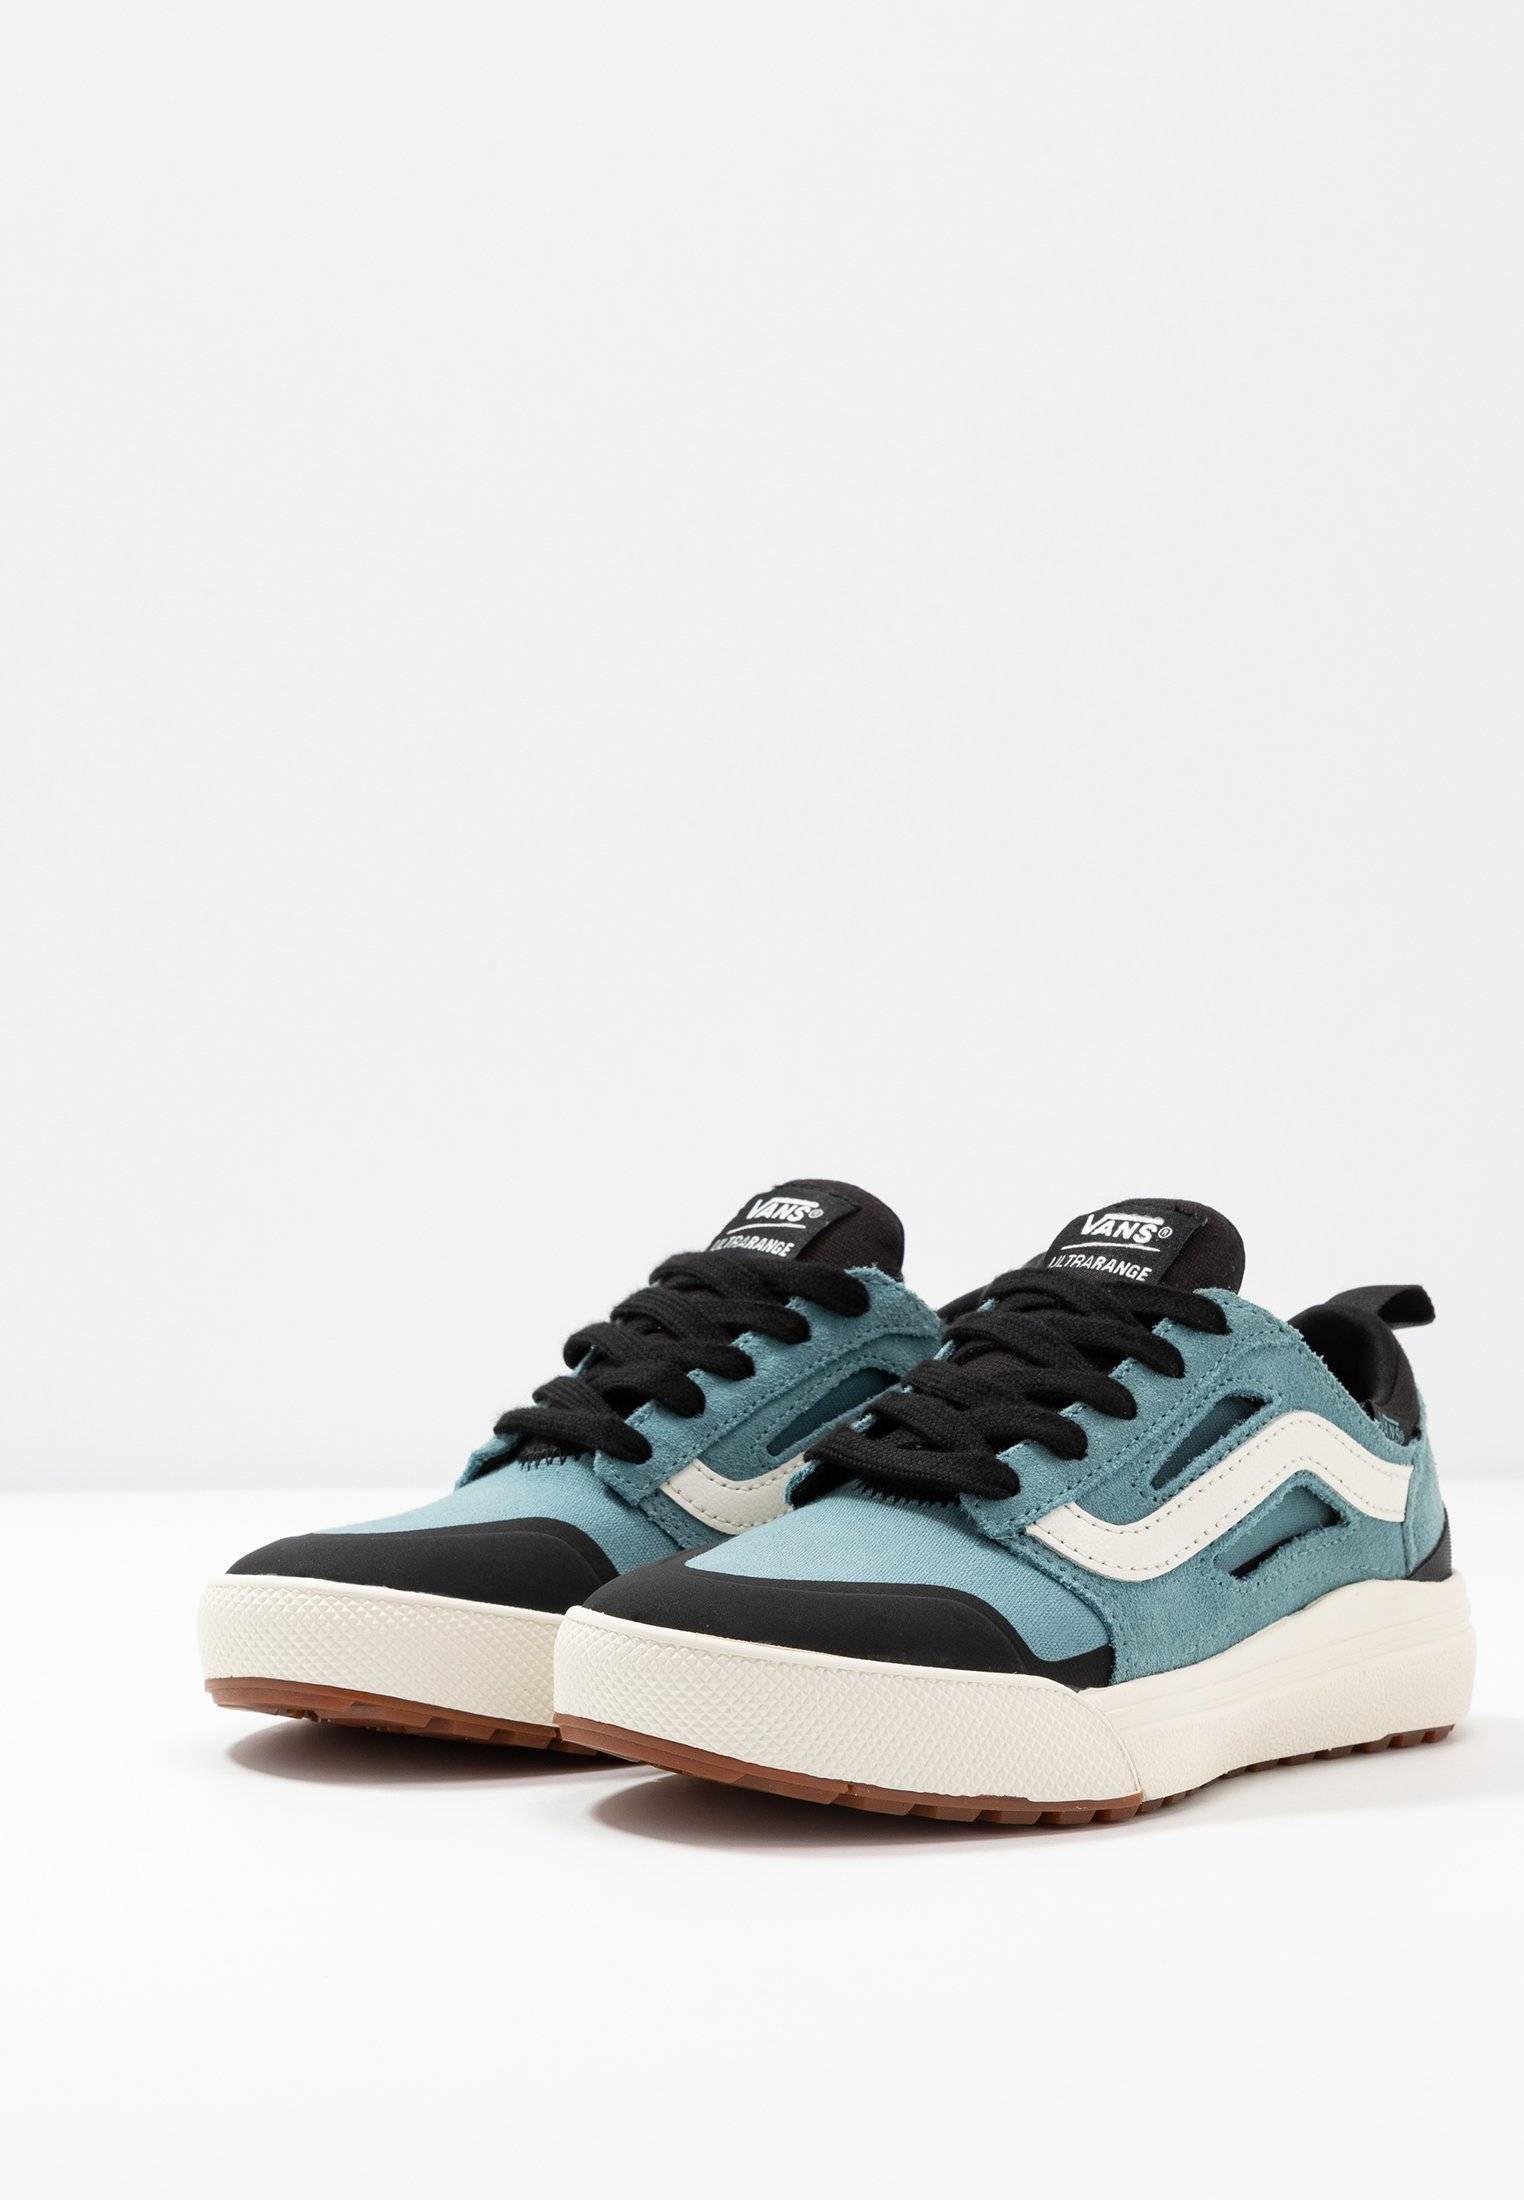 Vans Basses black Smoke UltrarangeBaskets Blue n0O8kwPX